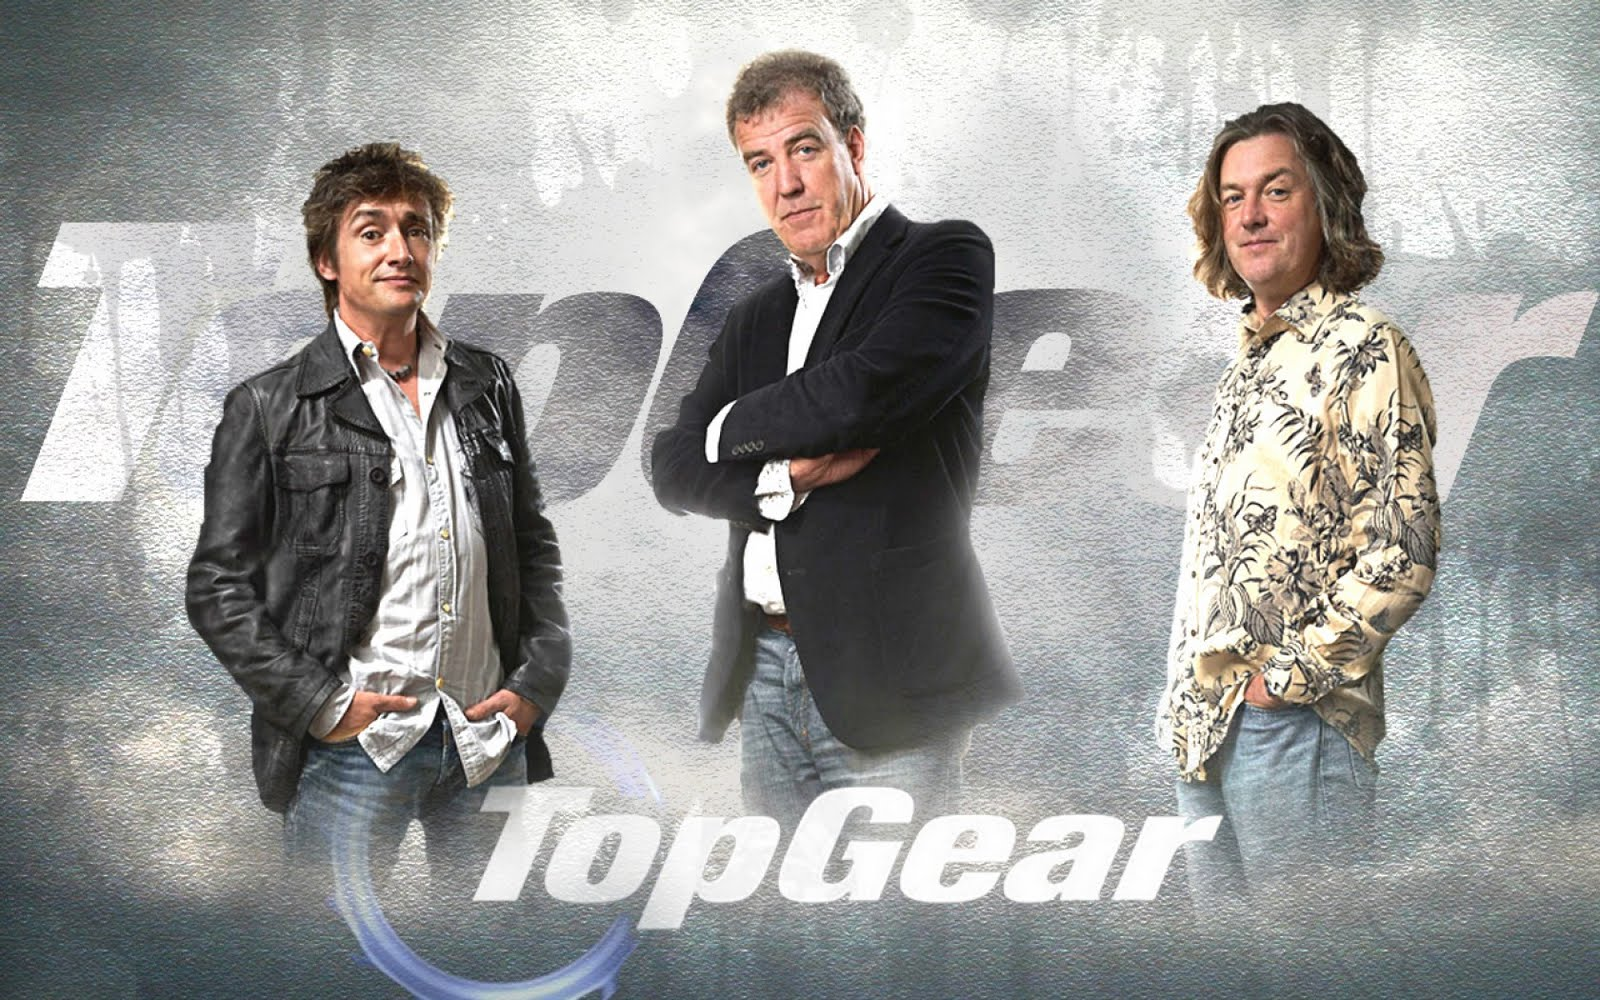 jeremy clarkson suspended from top gear eteknix. Black Bedroom Furniture Sets. Home Design Ideas